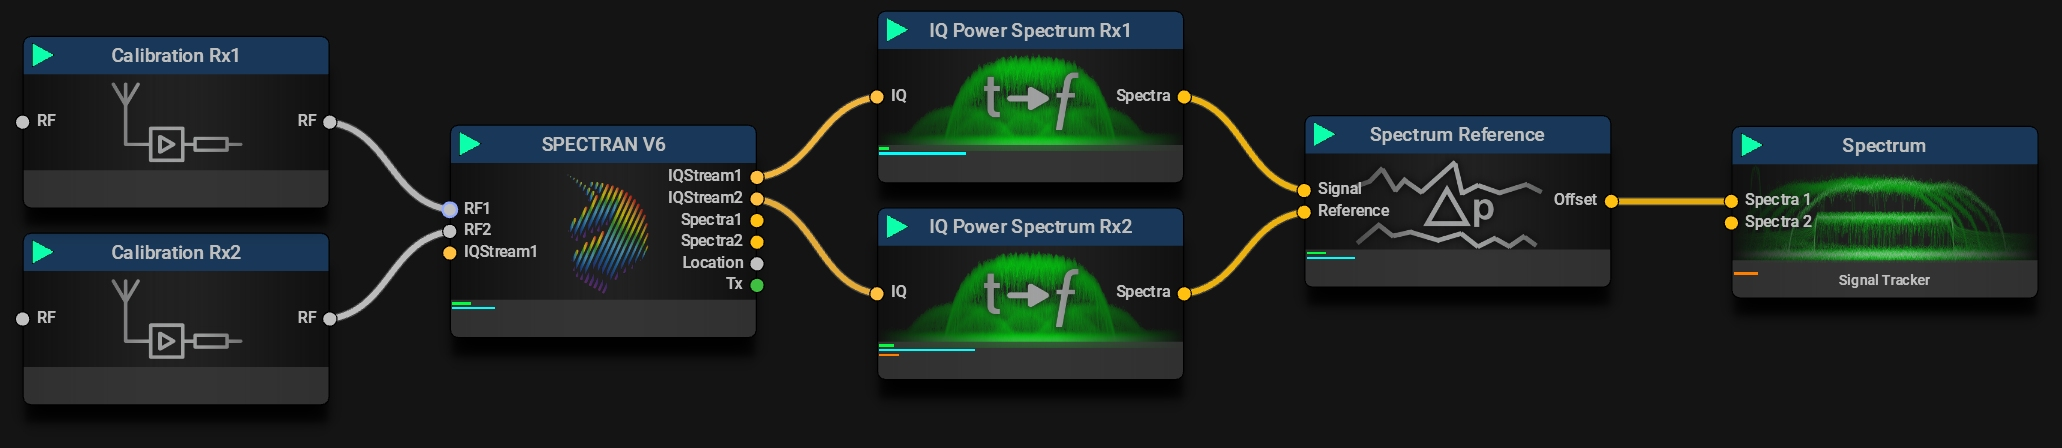 Spectrum Reference   A typical Mission for RF Signal Location